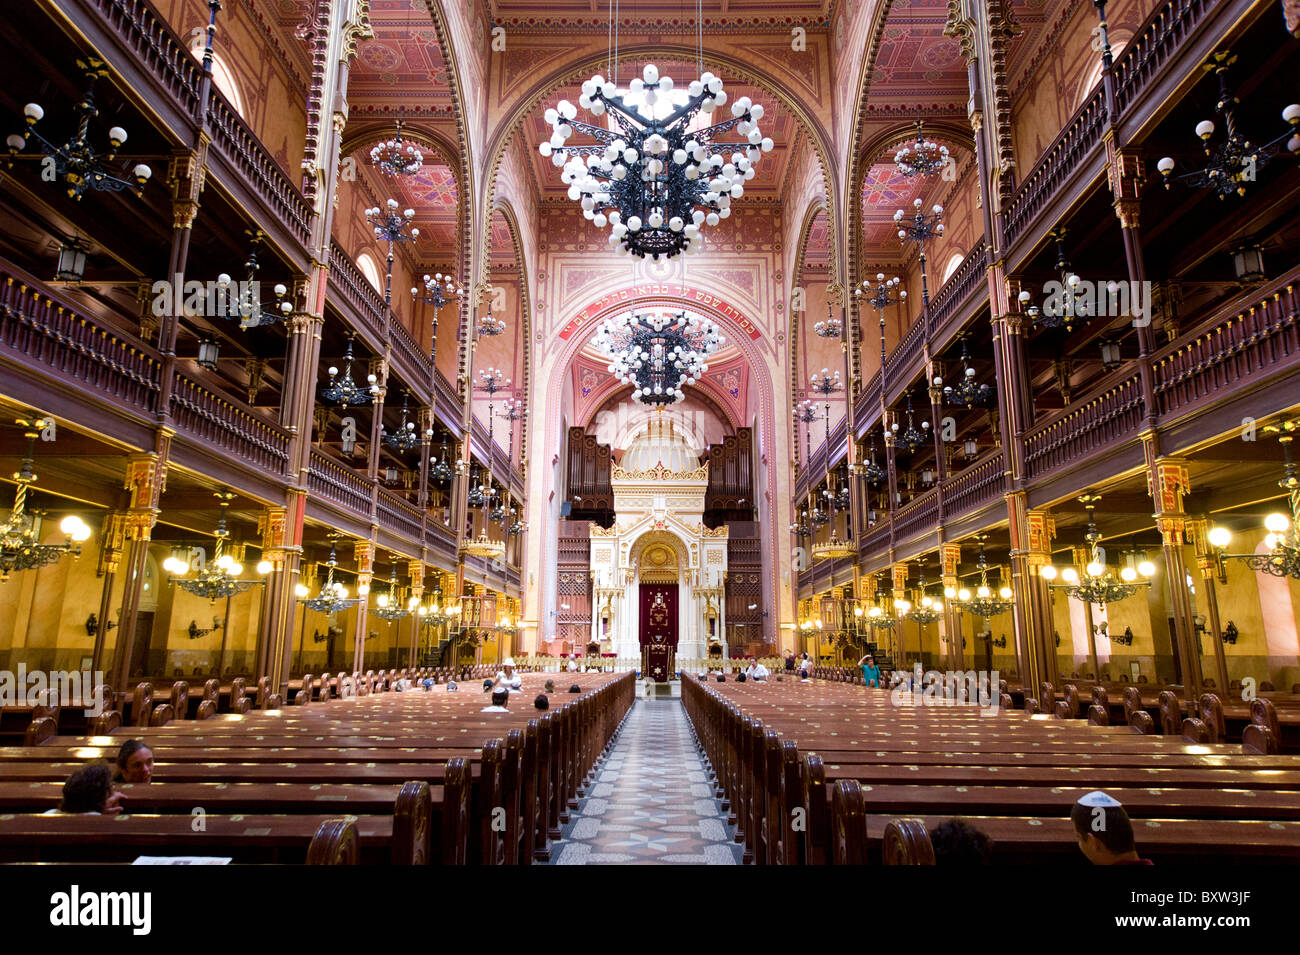 The Great Synagogue, Budapest, Hungary - Stock Image